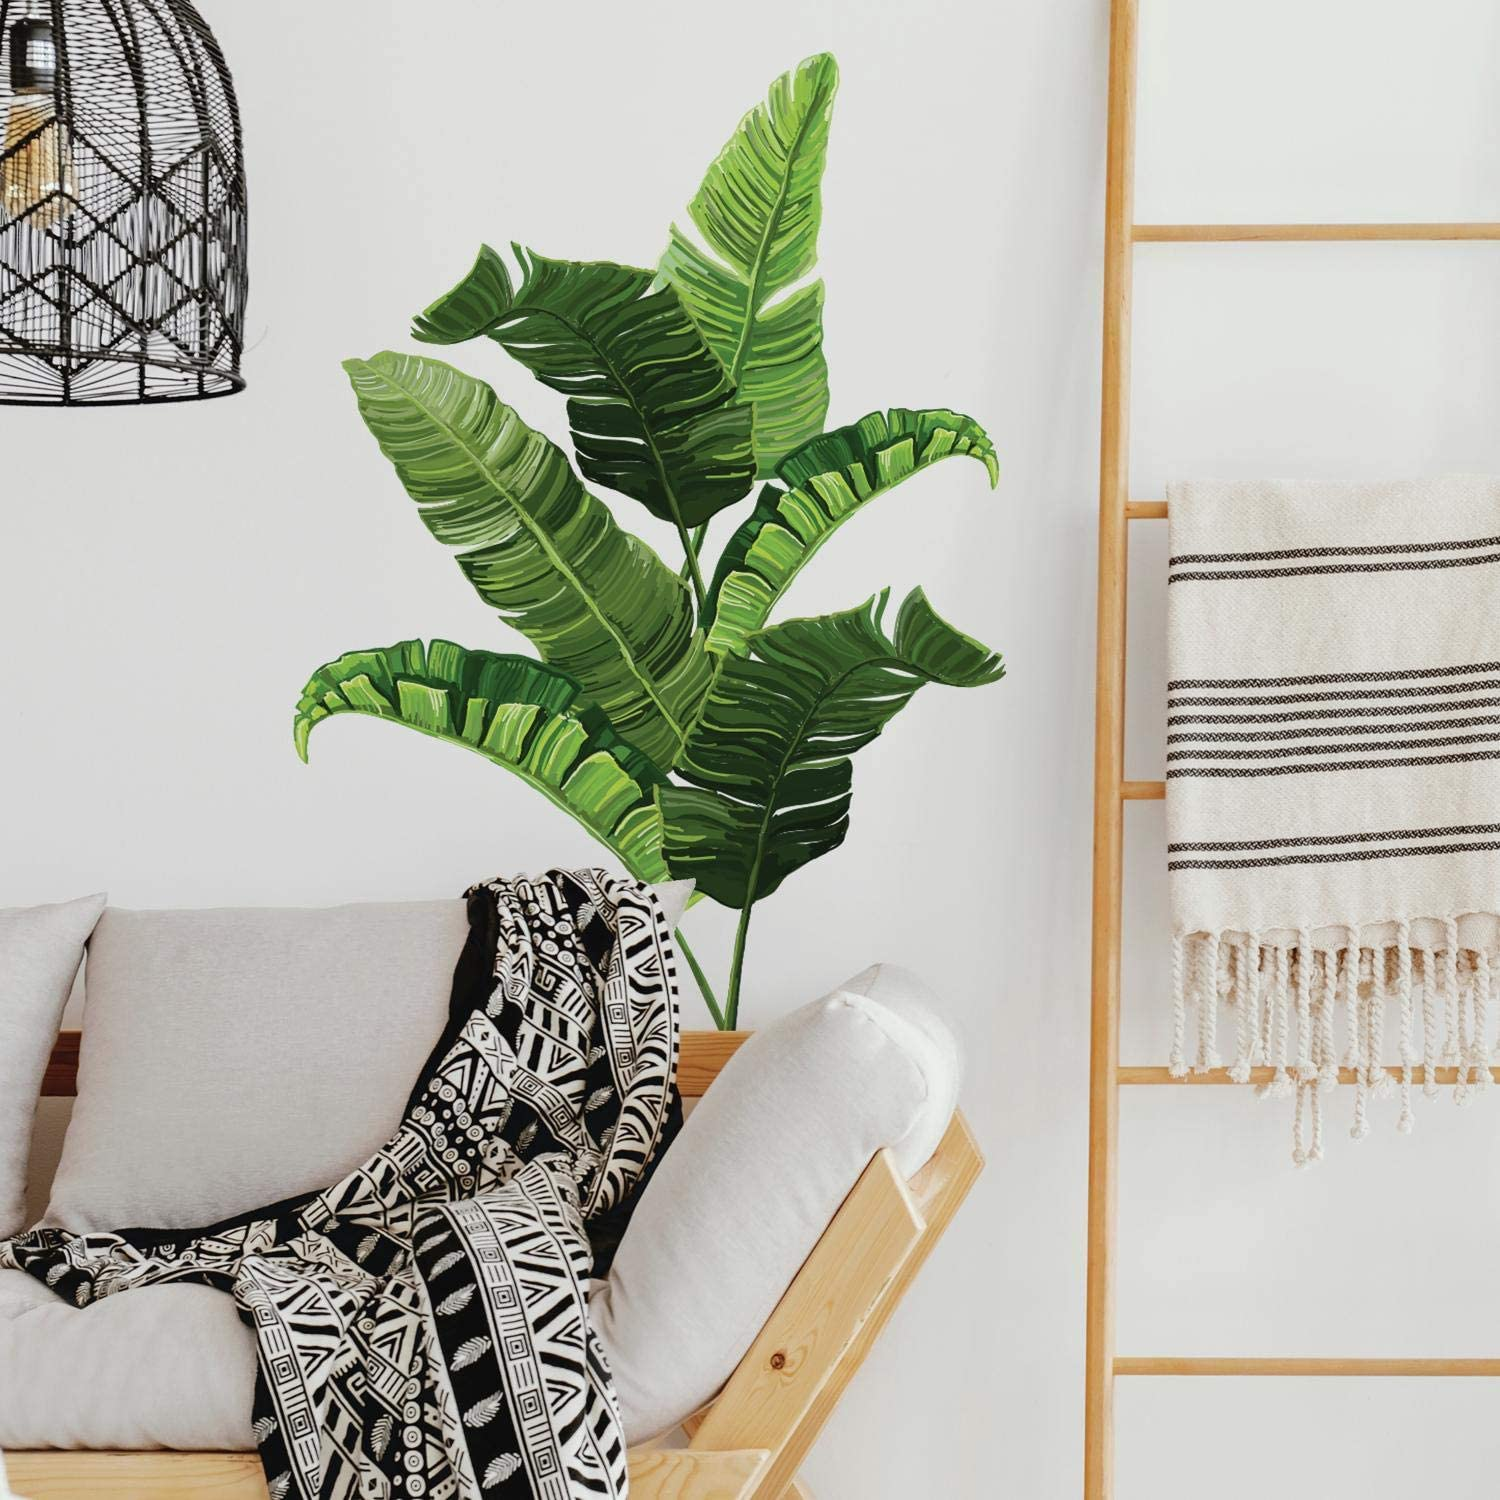 RoomMates Banana Leaf Peel And Stick Giant Wall Decals